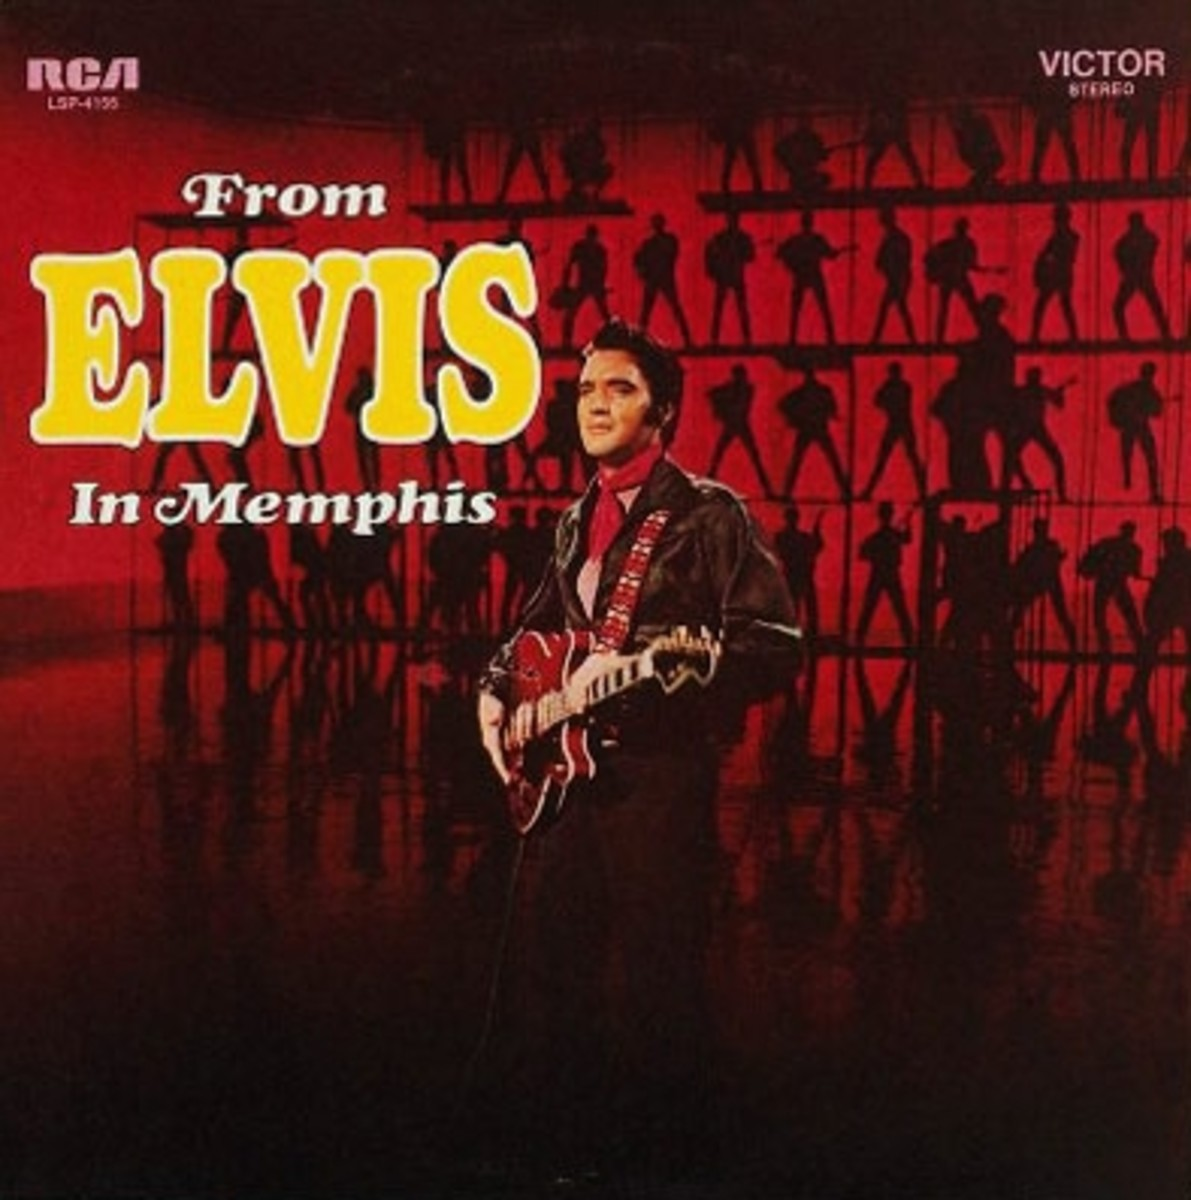 Ten Underrated Post-Comeback Elvis Presley Songs for Your iPod